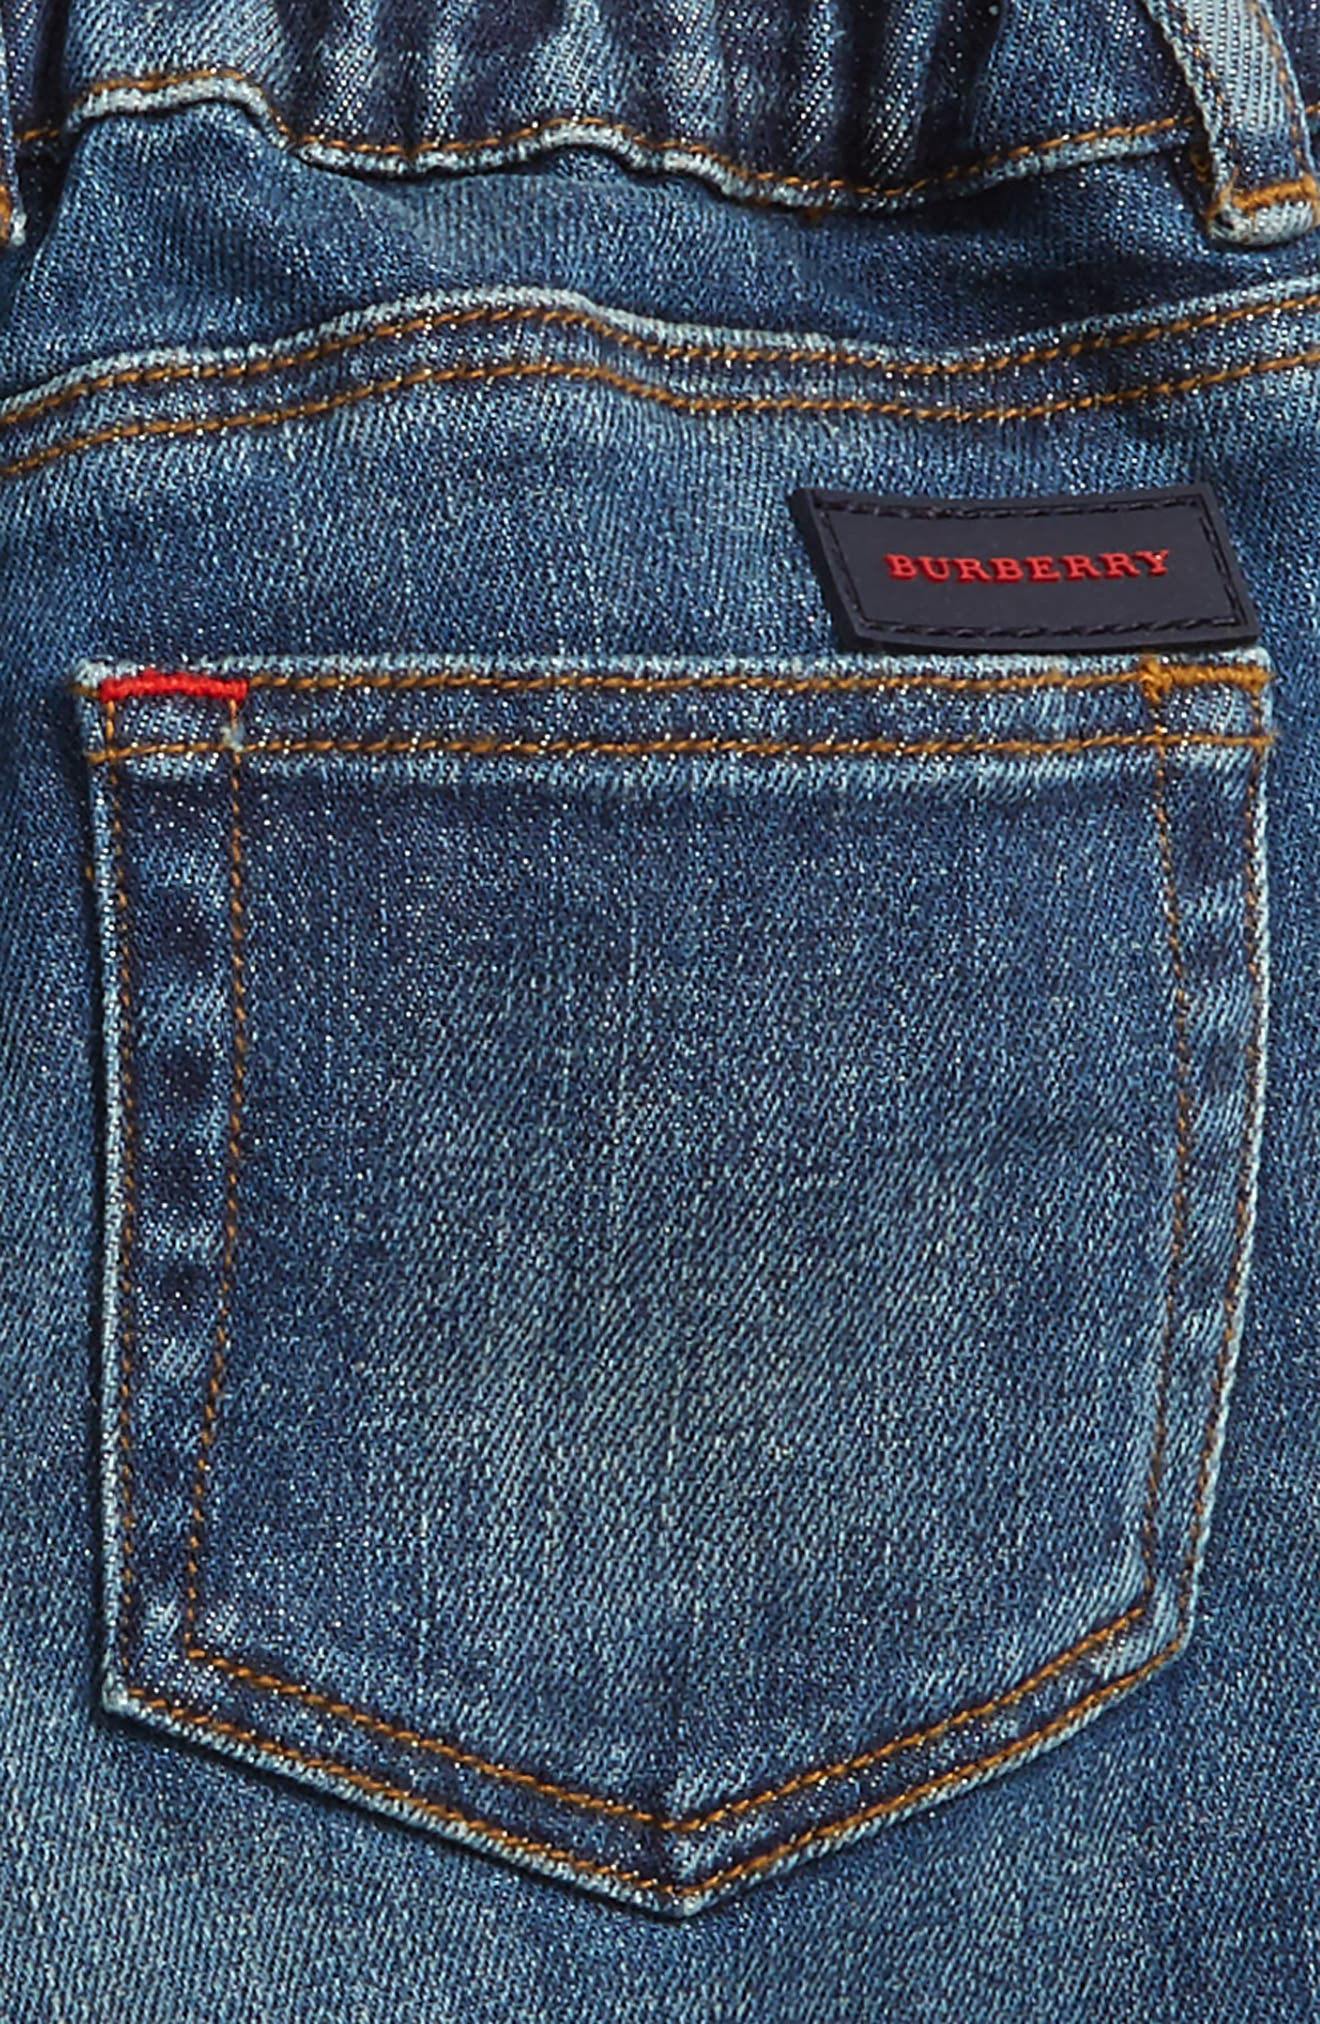 Check Cuff Relaxed Jeans,                             Alternate thumbnail 3, color,                             Indigo